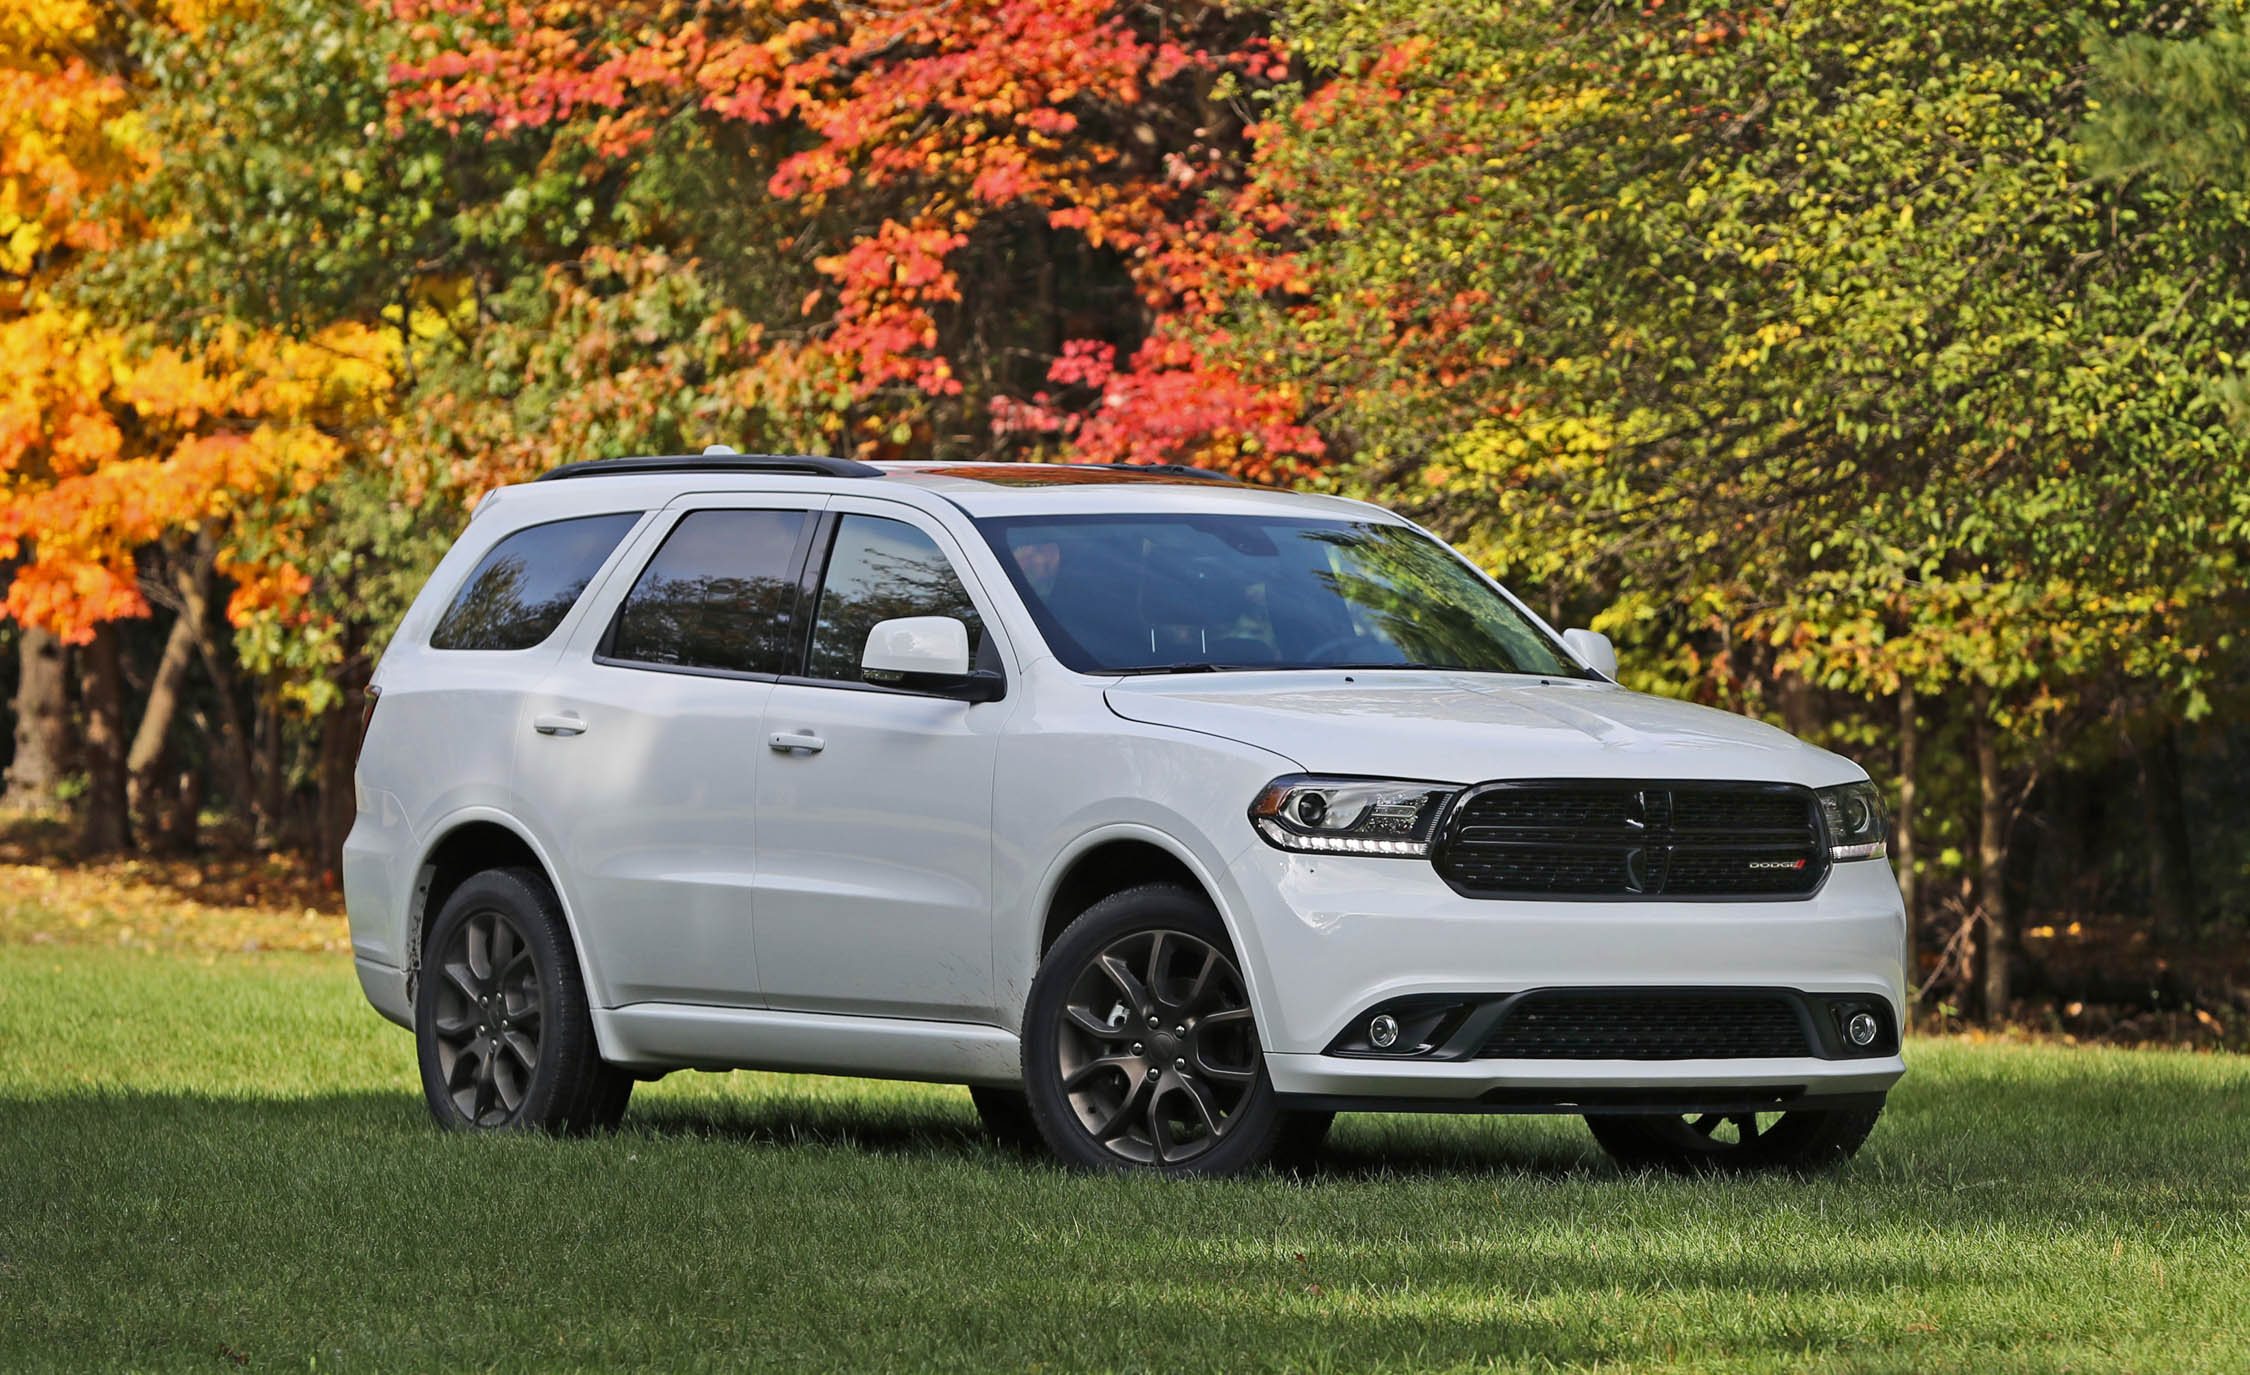 2017 dodge durango gt cars exclusive videos and photos updates. Black Bedroom Furniture Sets. Home Design Ideas